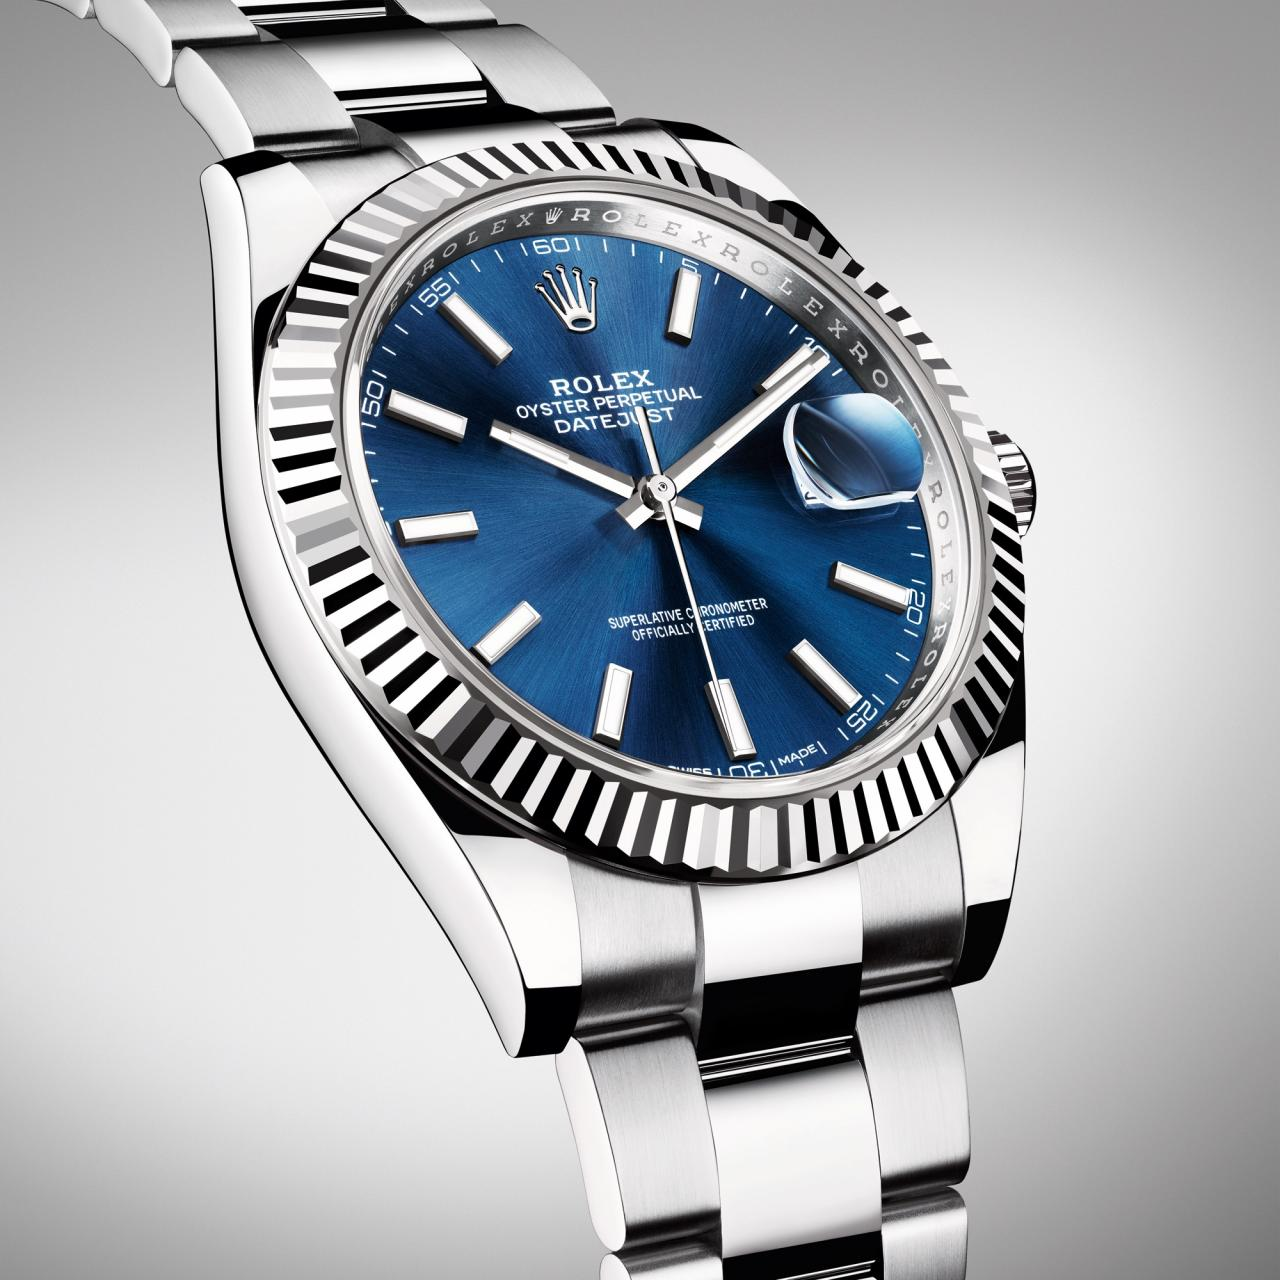 Rolex Datejust 41 blue dial replica